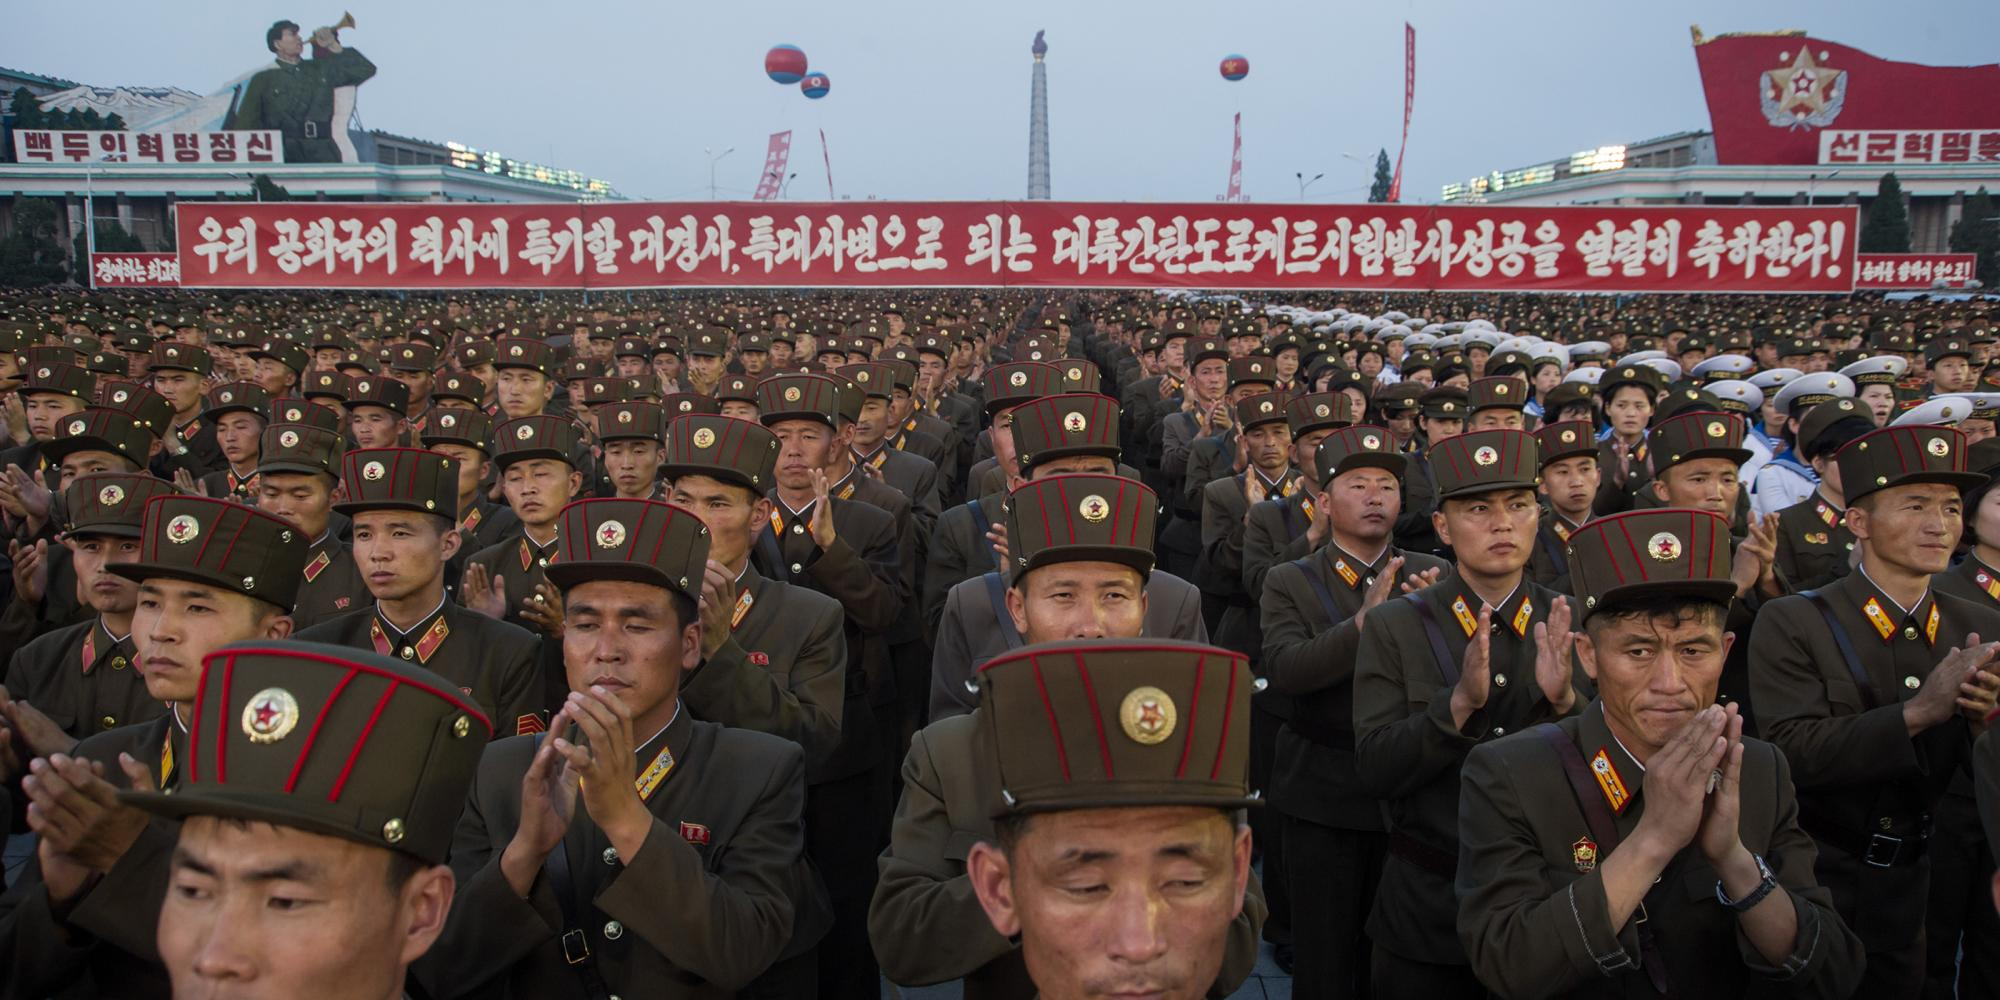 A sea of soldiers in brown uniforms stand in front of long red banner with white text.